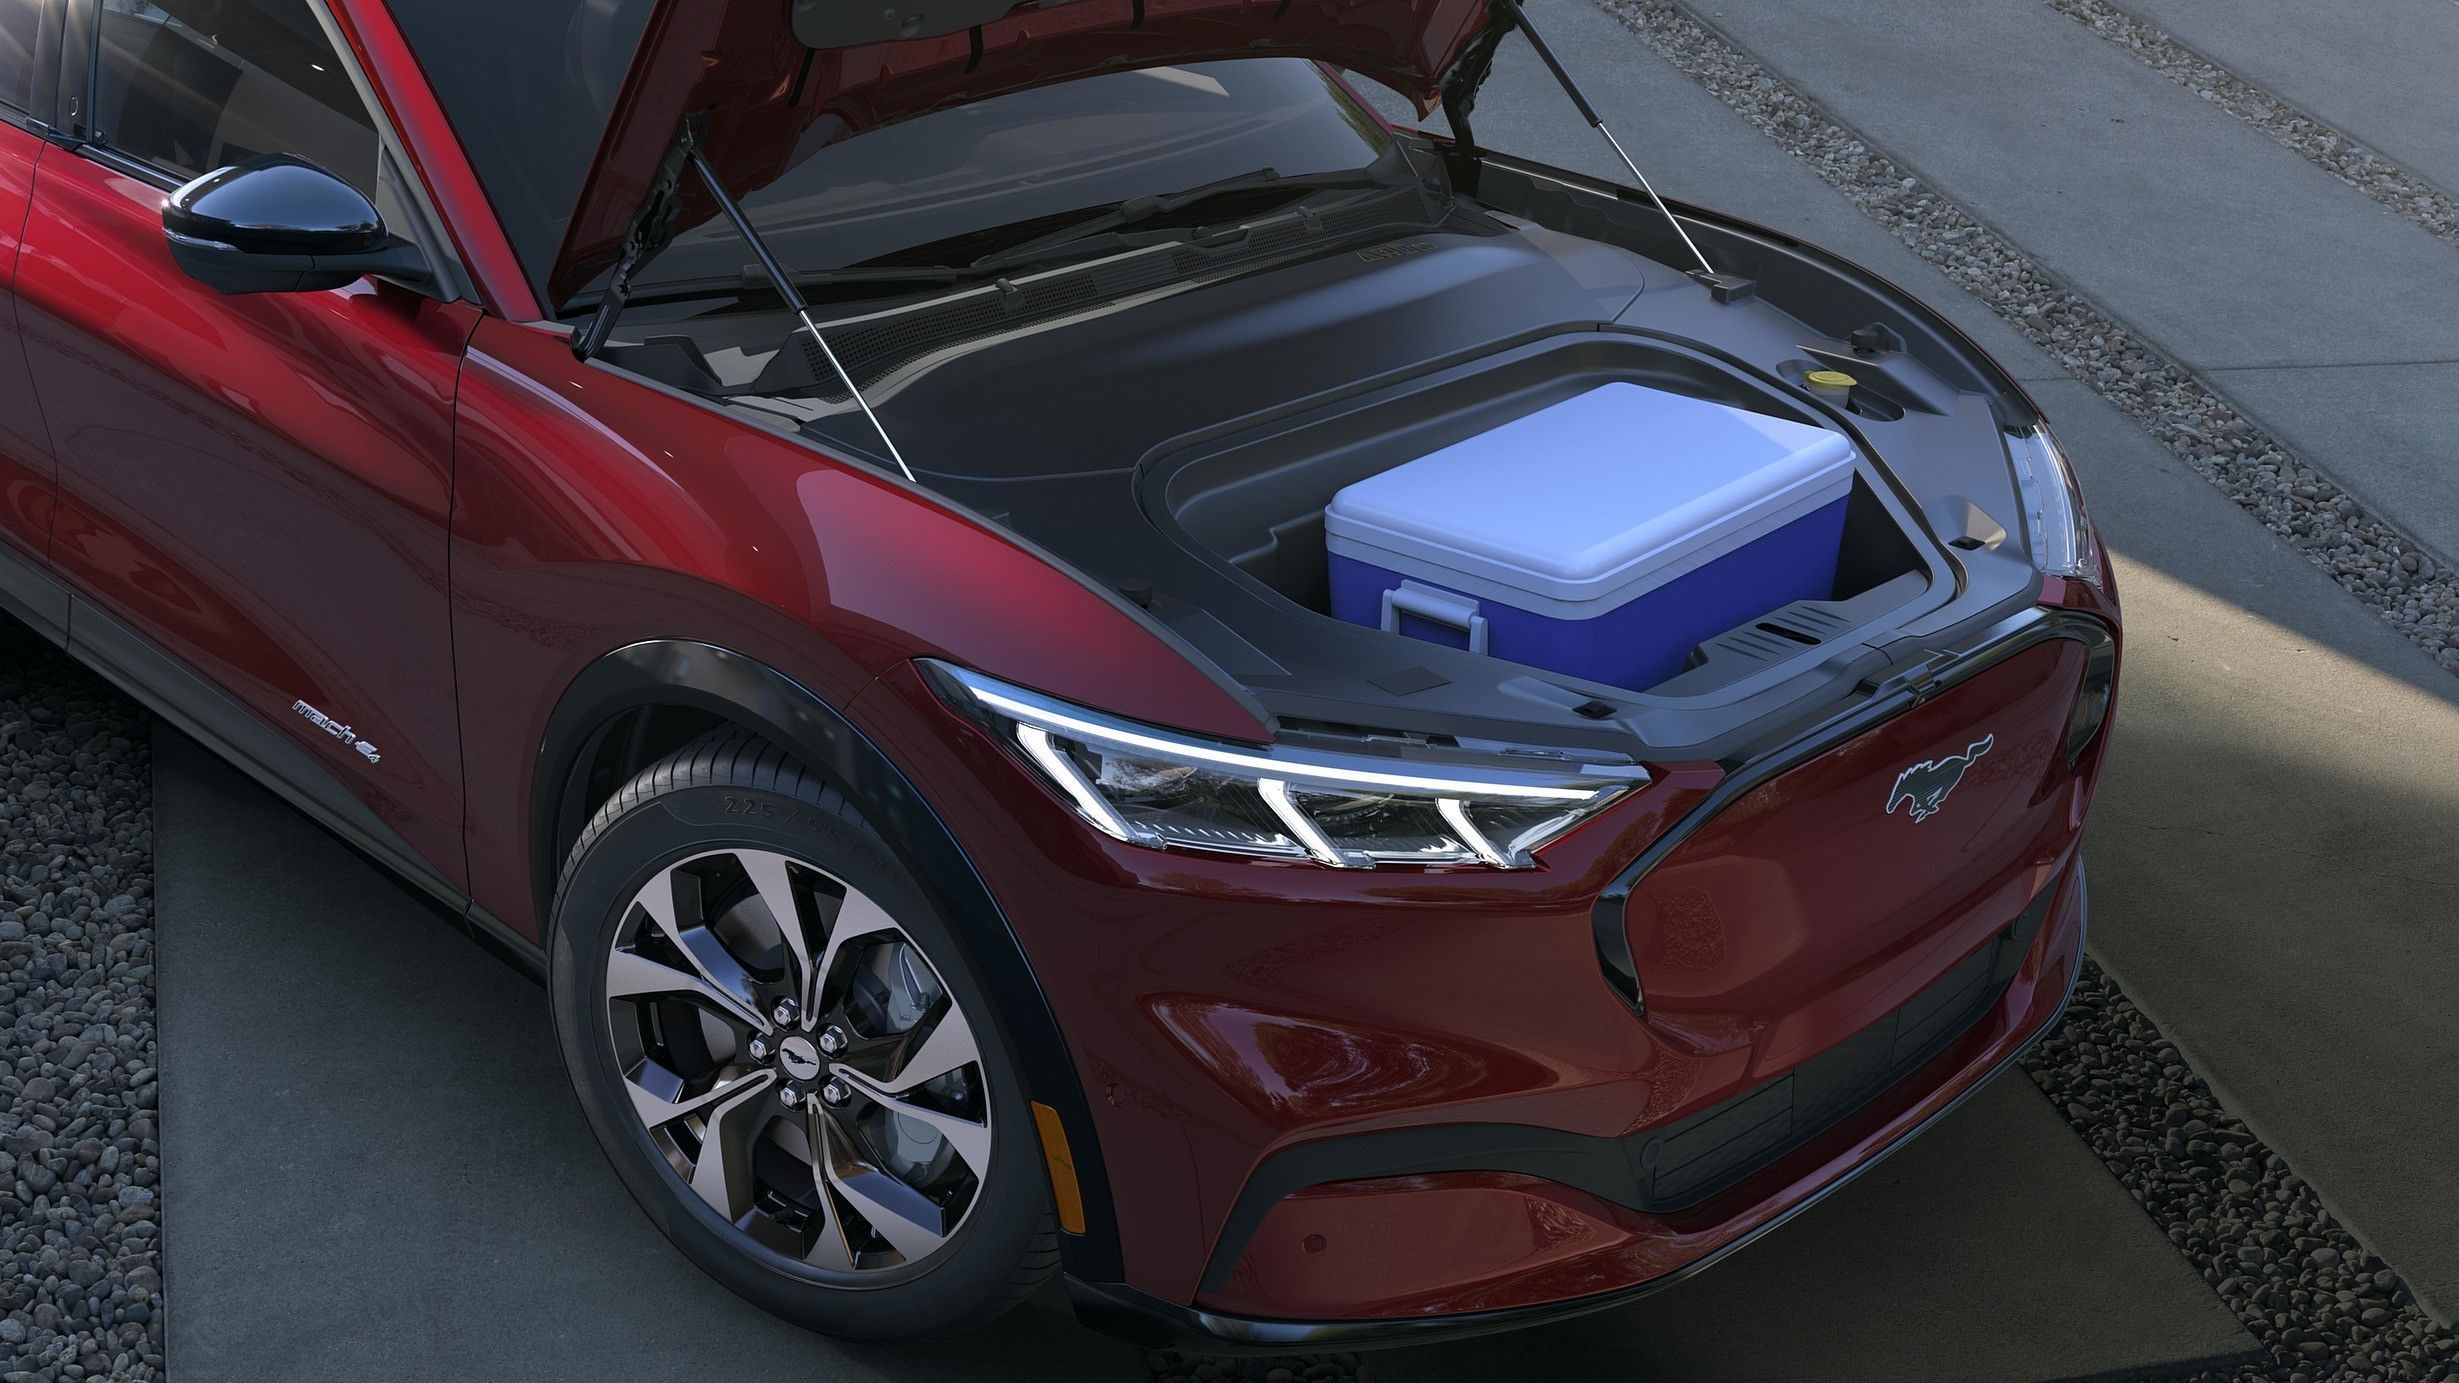 2021 ford mustang mach e exterior front cargo compartment